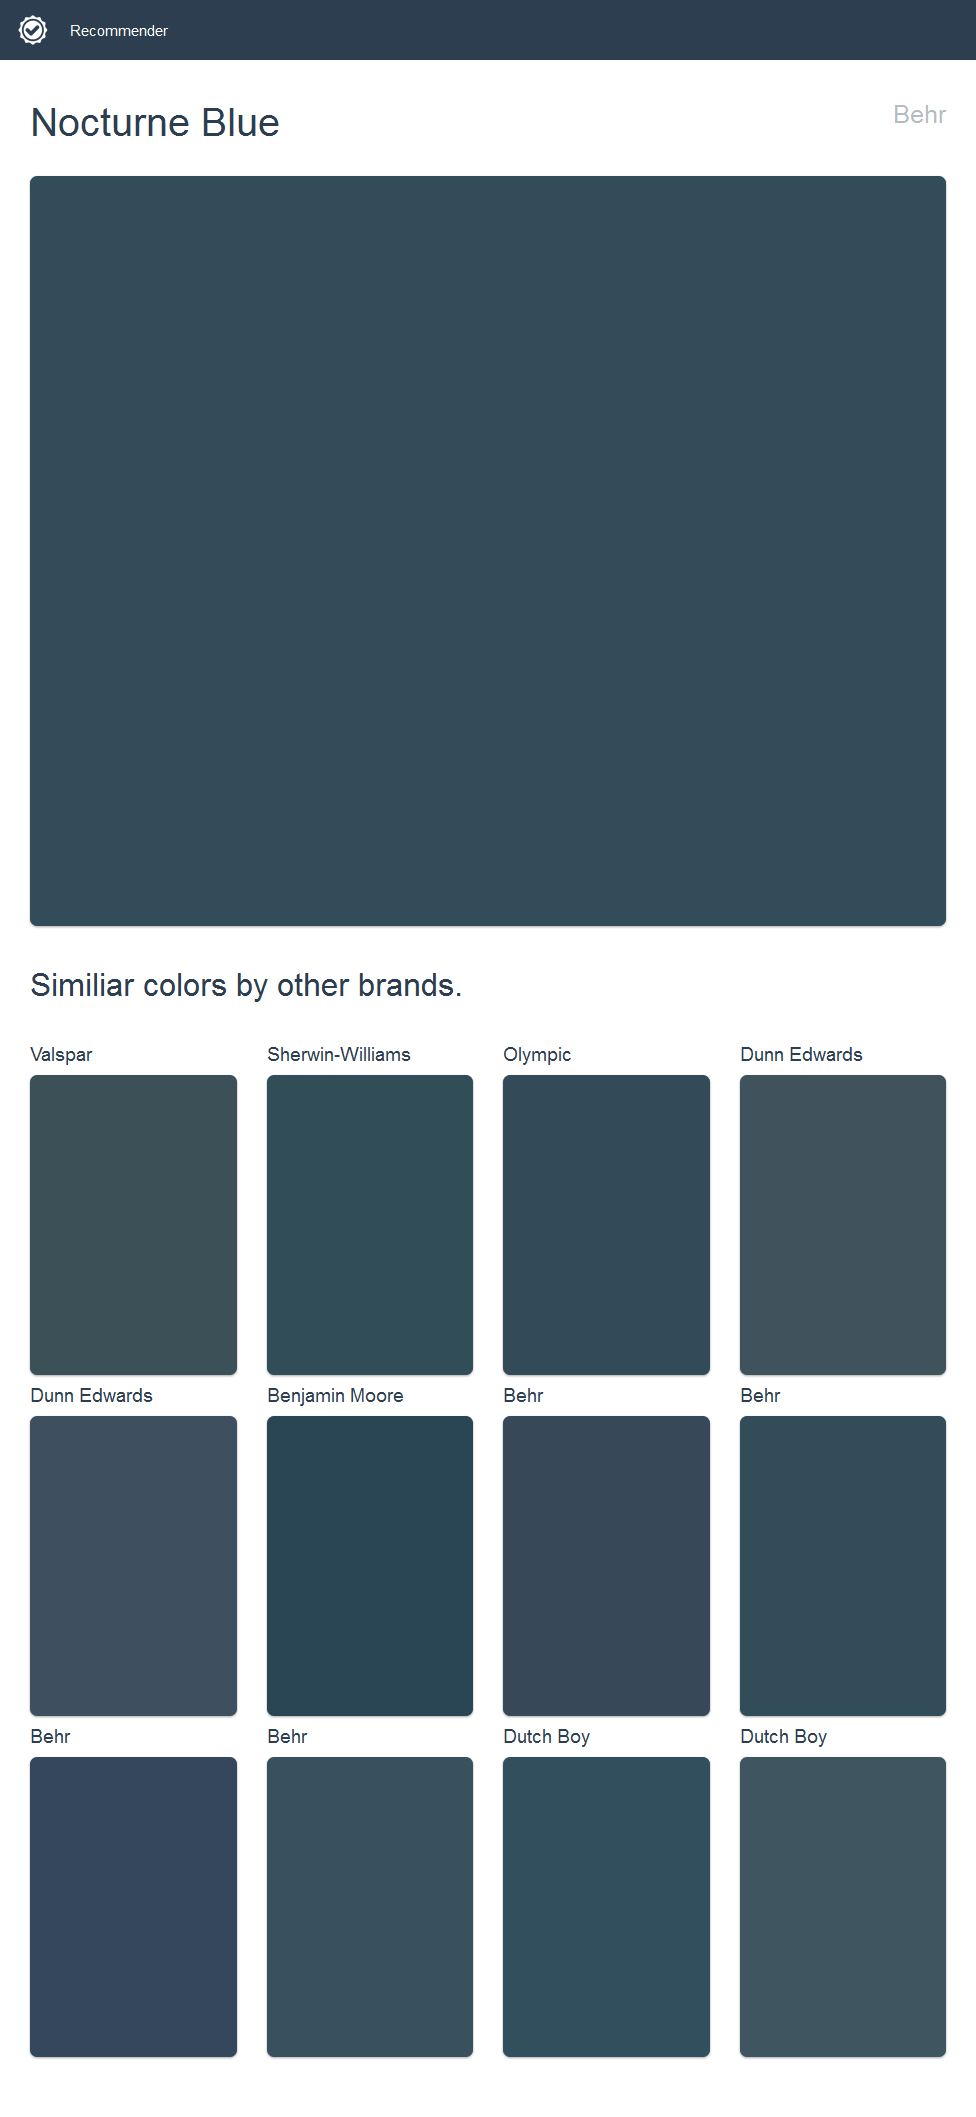 Nocturne Blue Behr Click The Image To See Similiar Colors By Other Brands